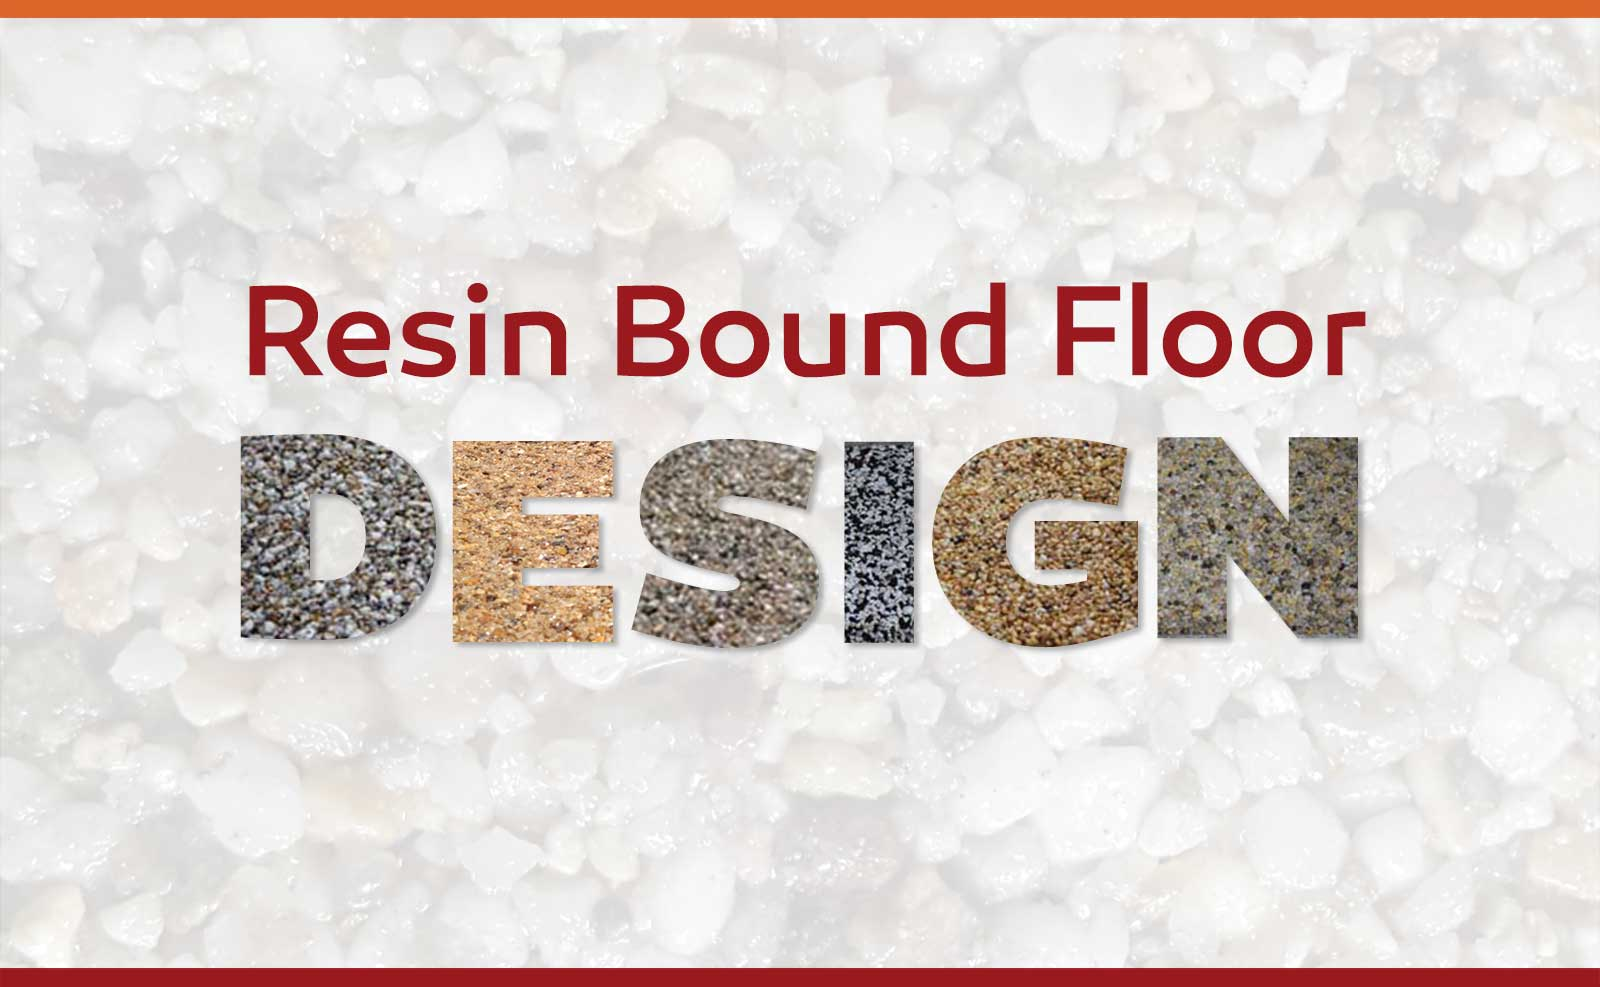 resin-bound-floor-identity-design